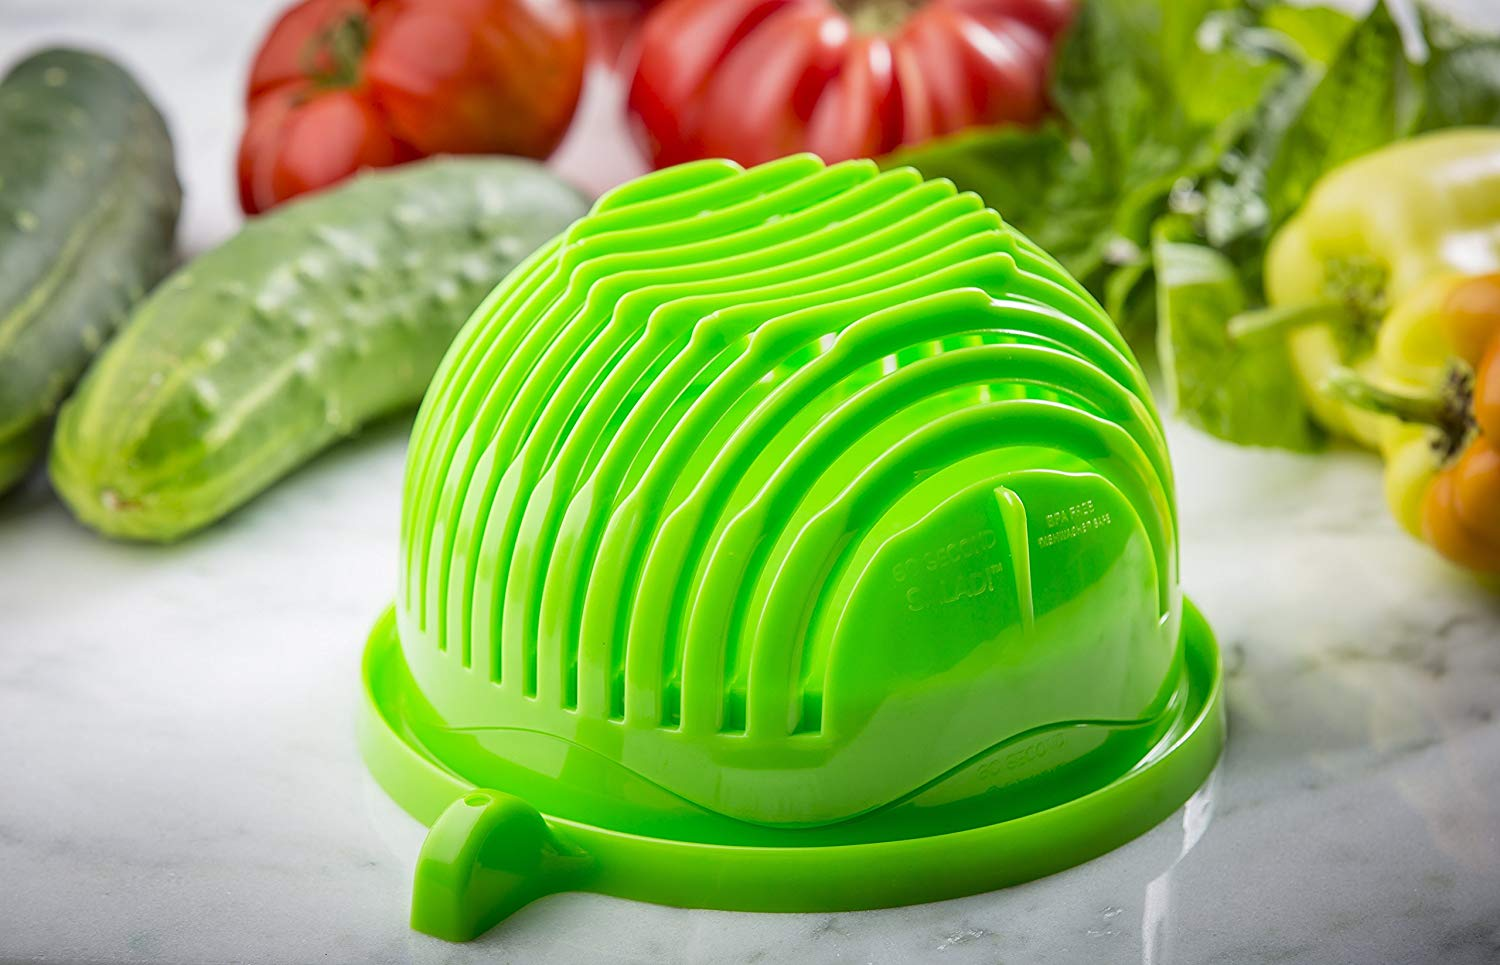 The ORIGINAL 60 Second Salad Maker